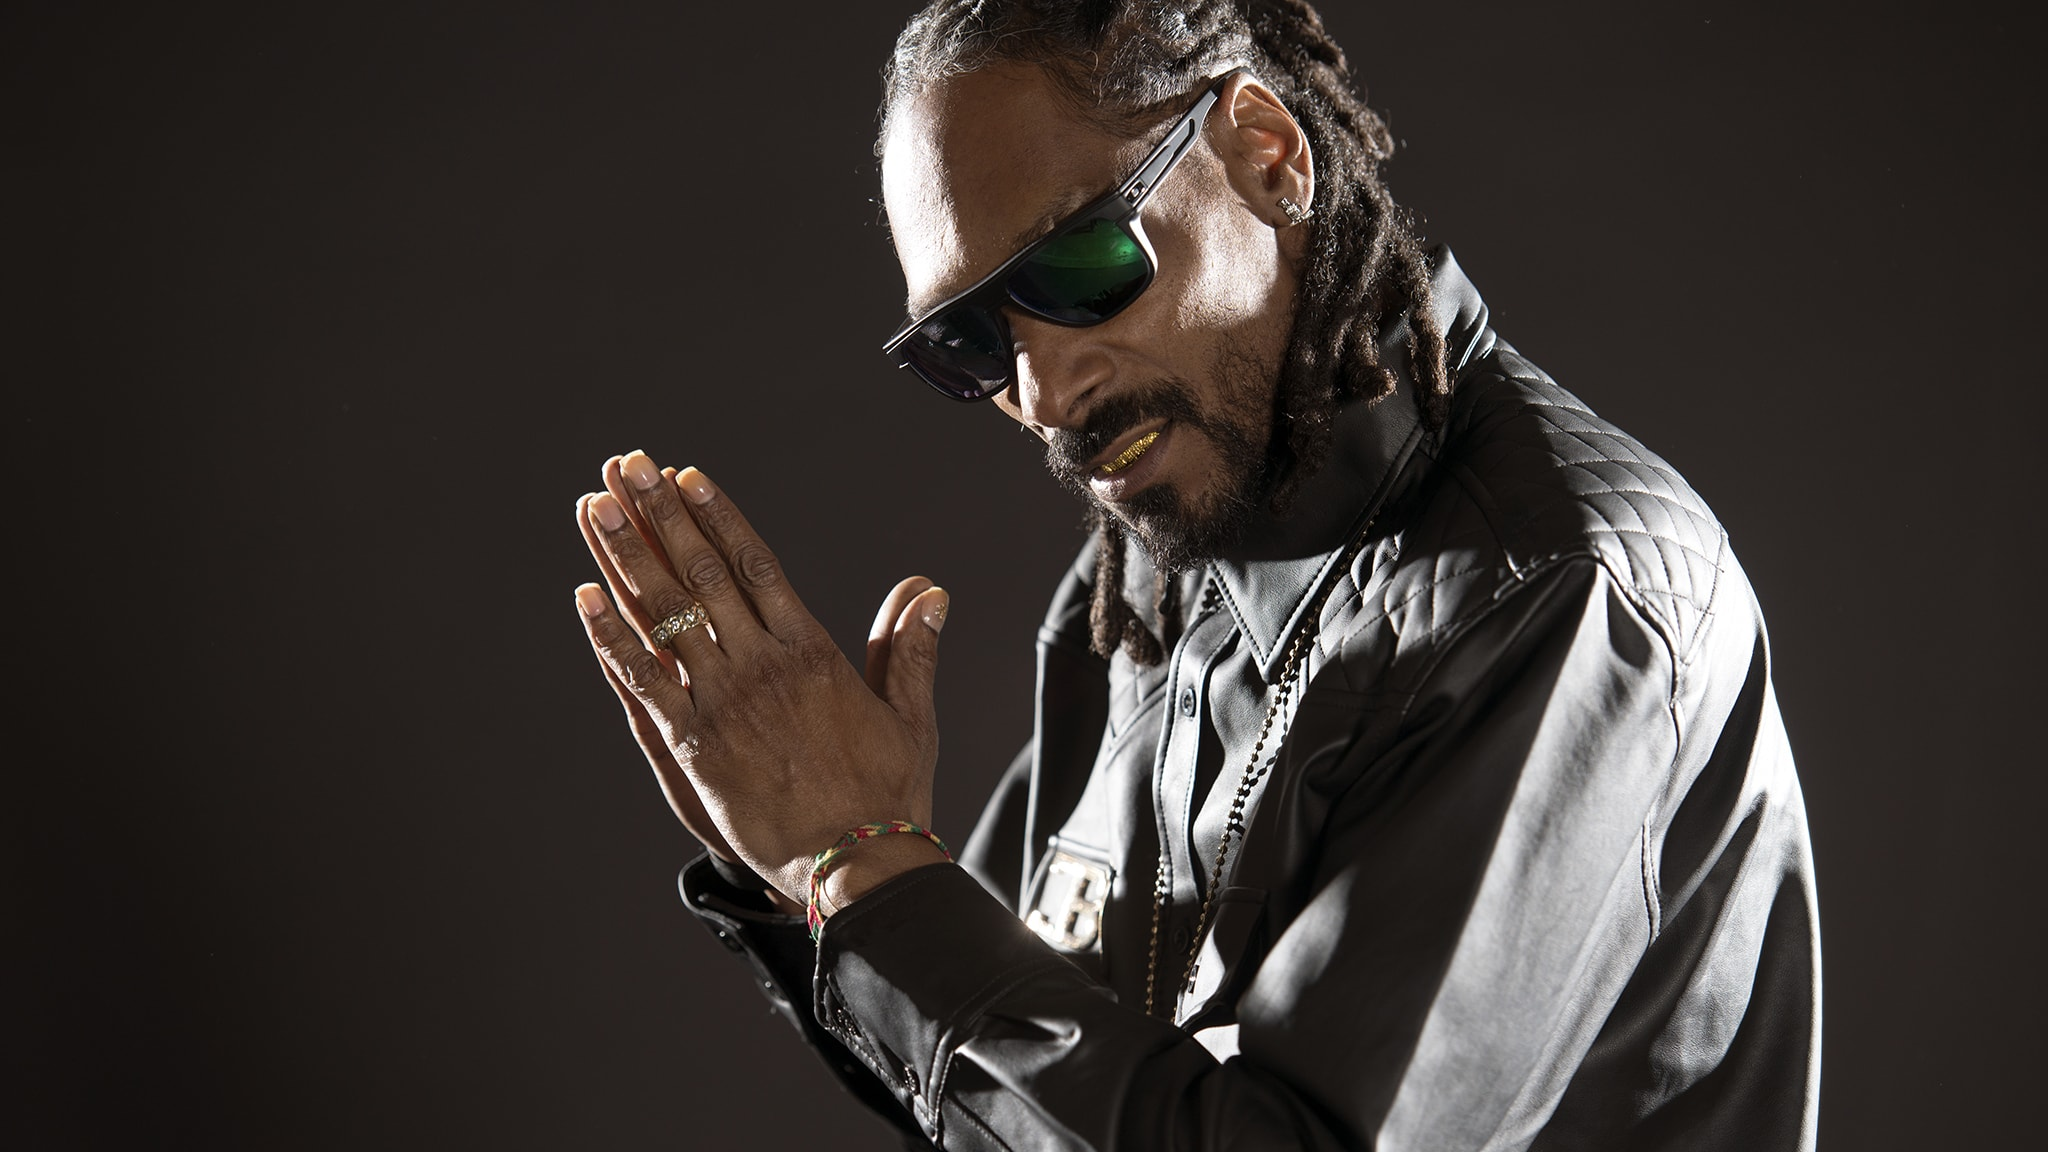 Snoop Dogg HD